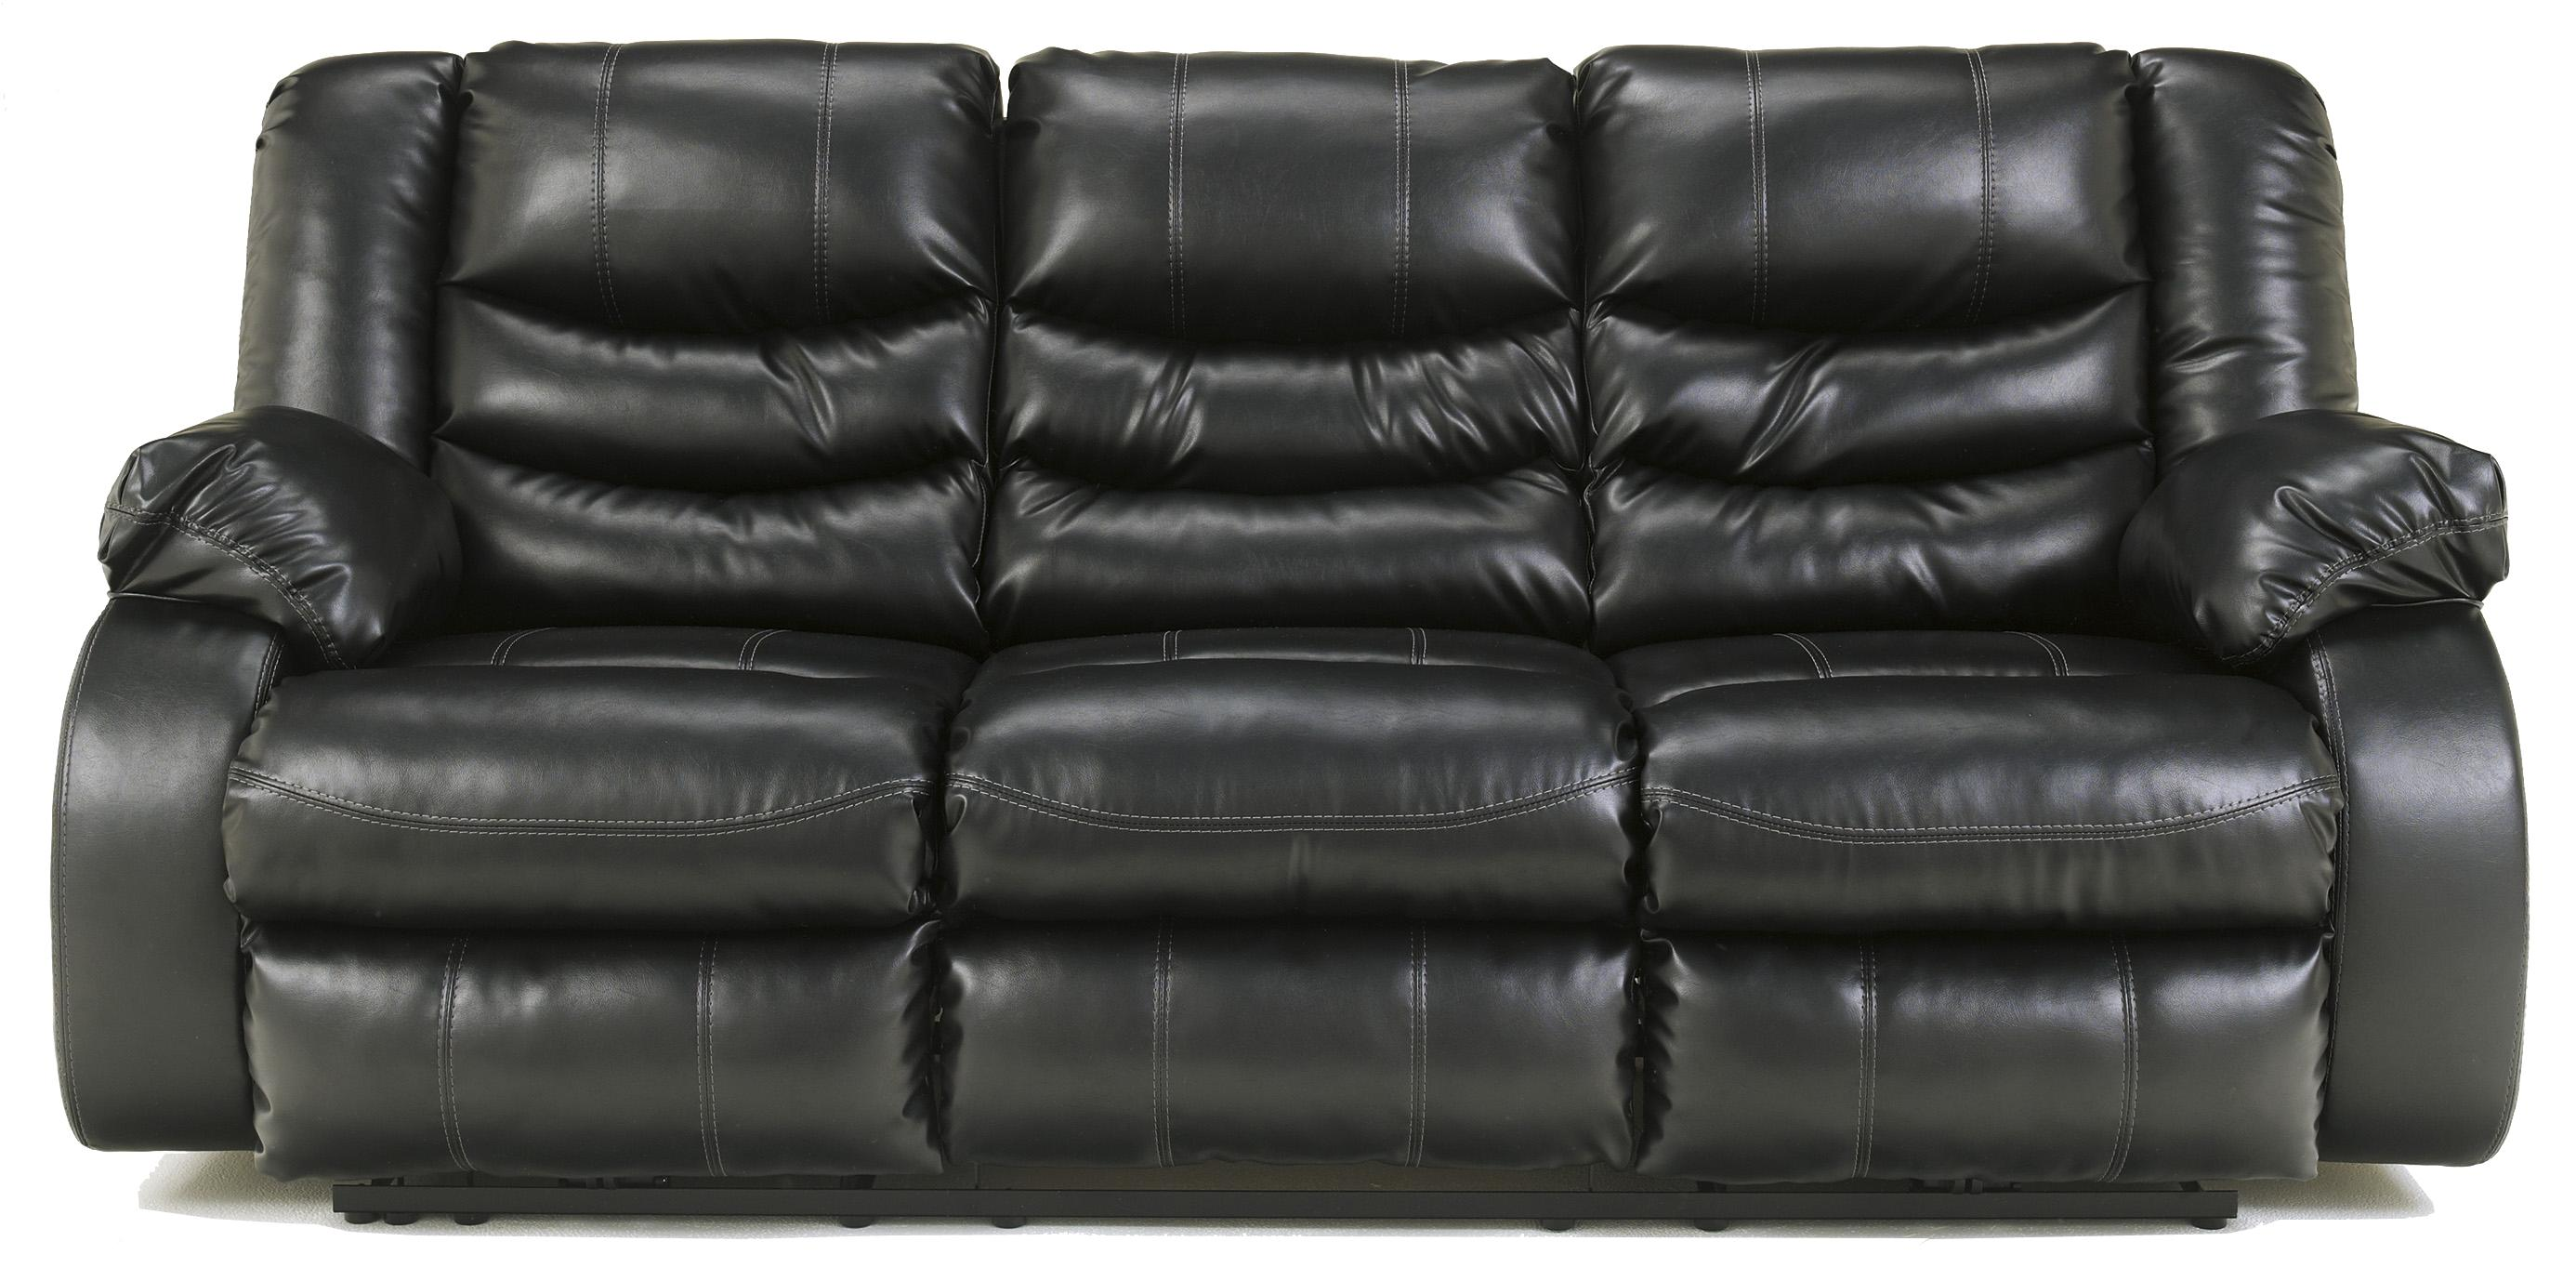 Benchcraft Linebacker DuraBlend - Black Reclining Sofa - Item Number: 9520288